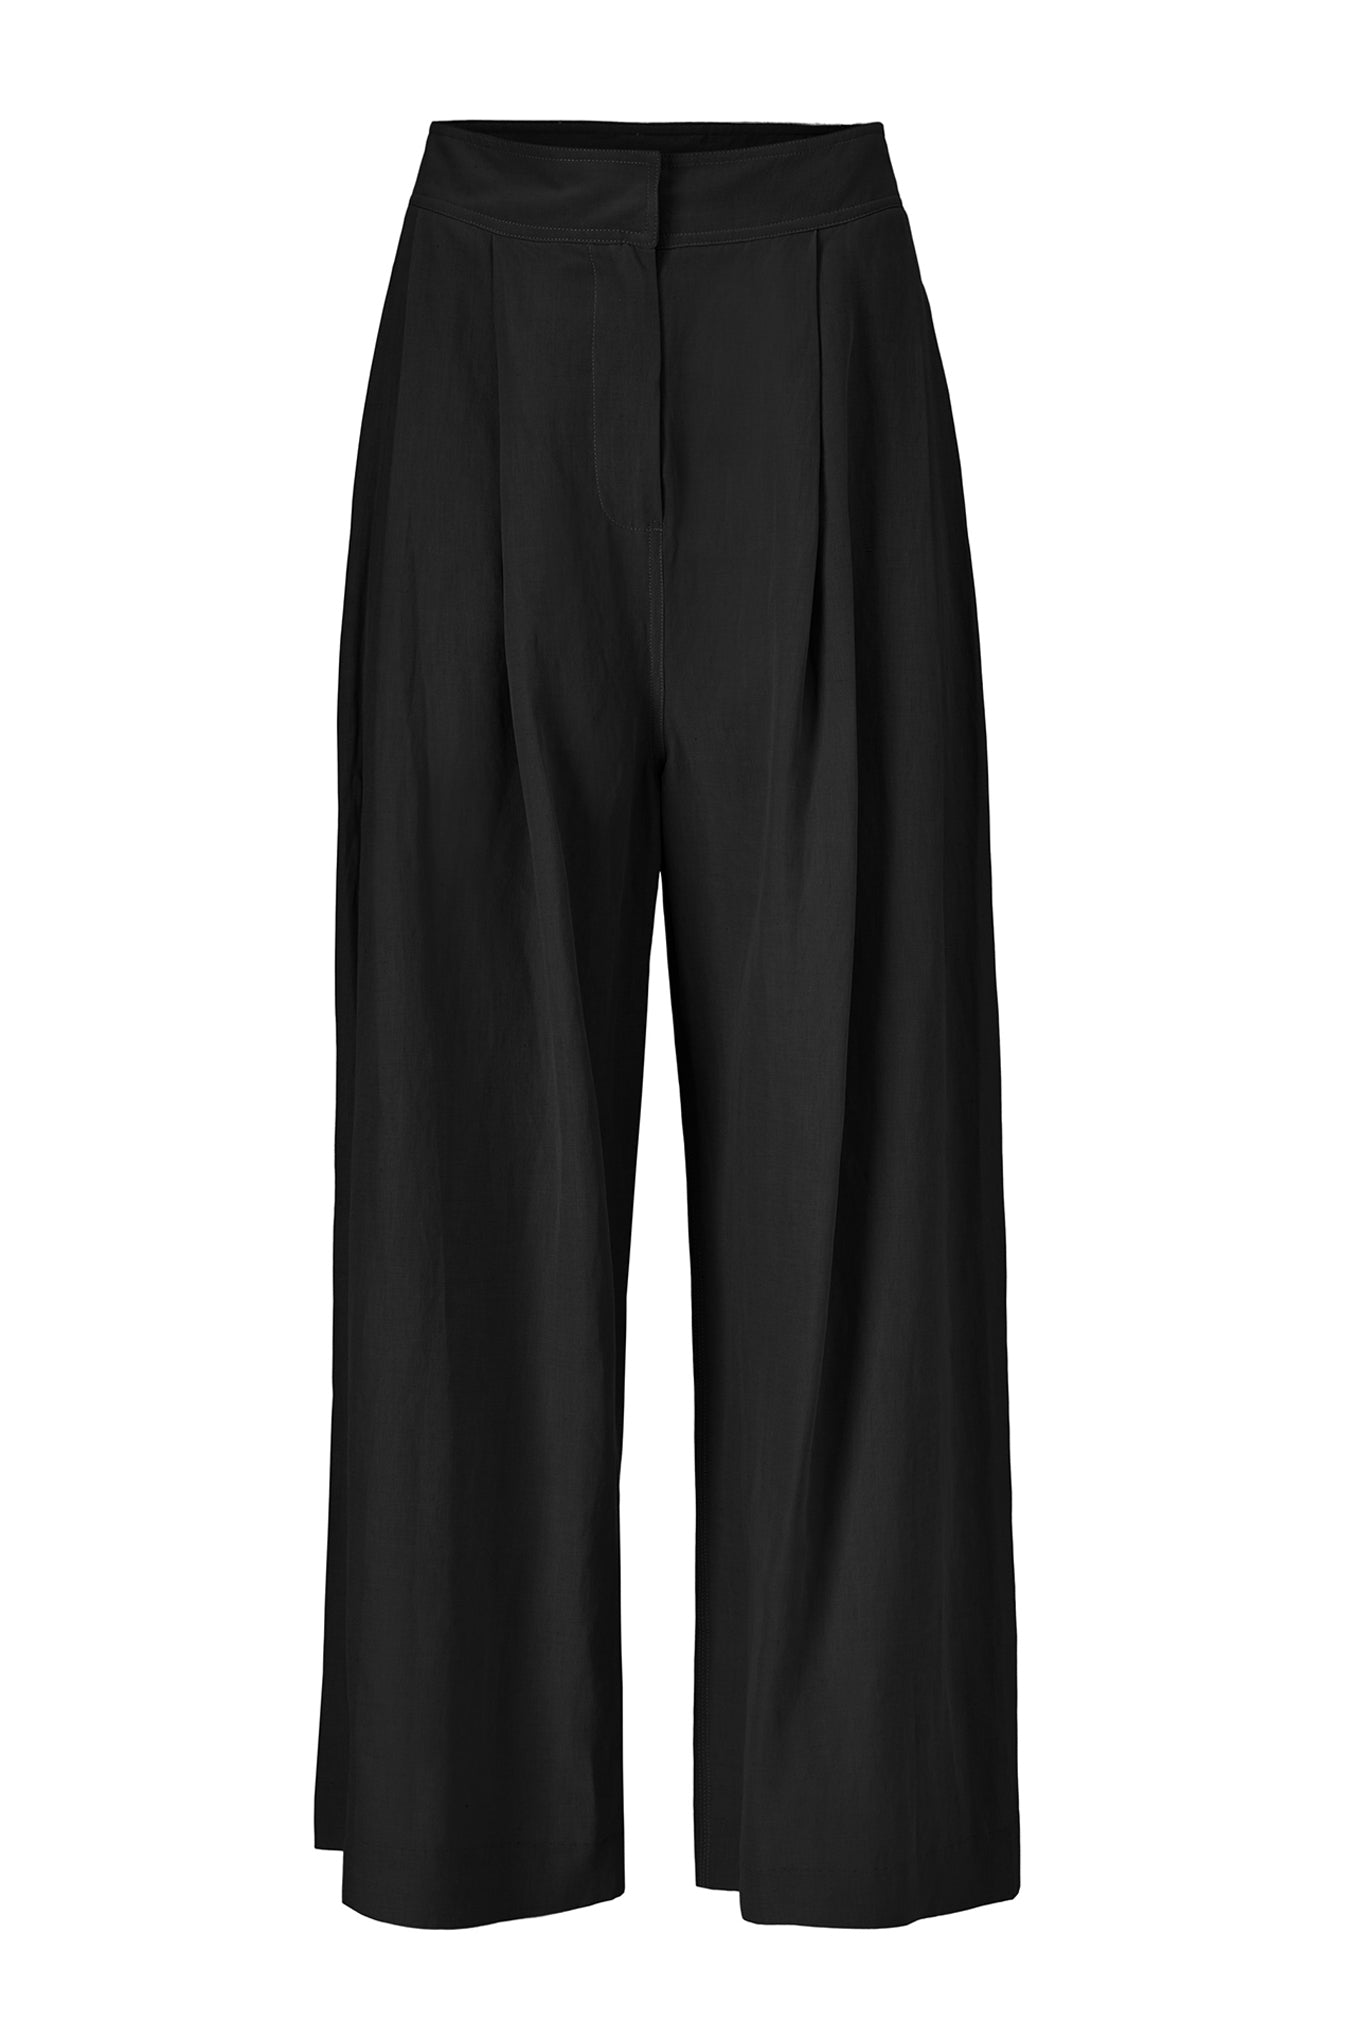 Debbie Pants - Black